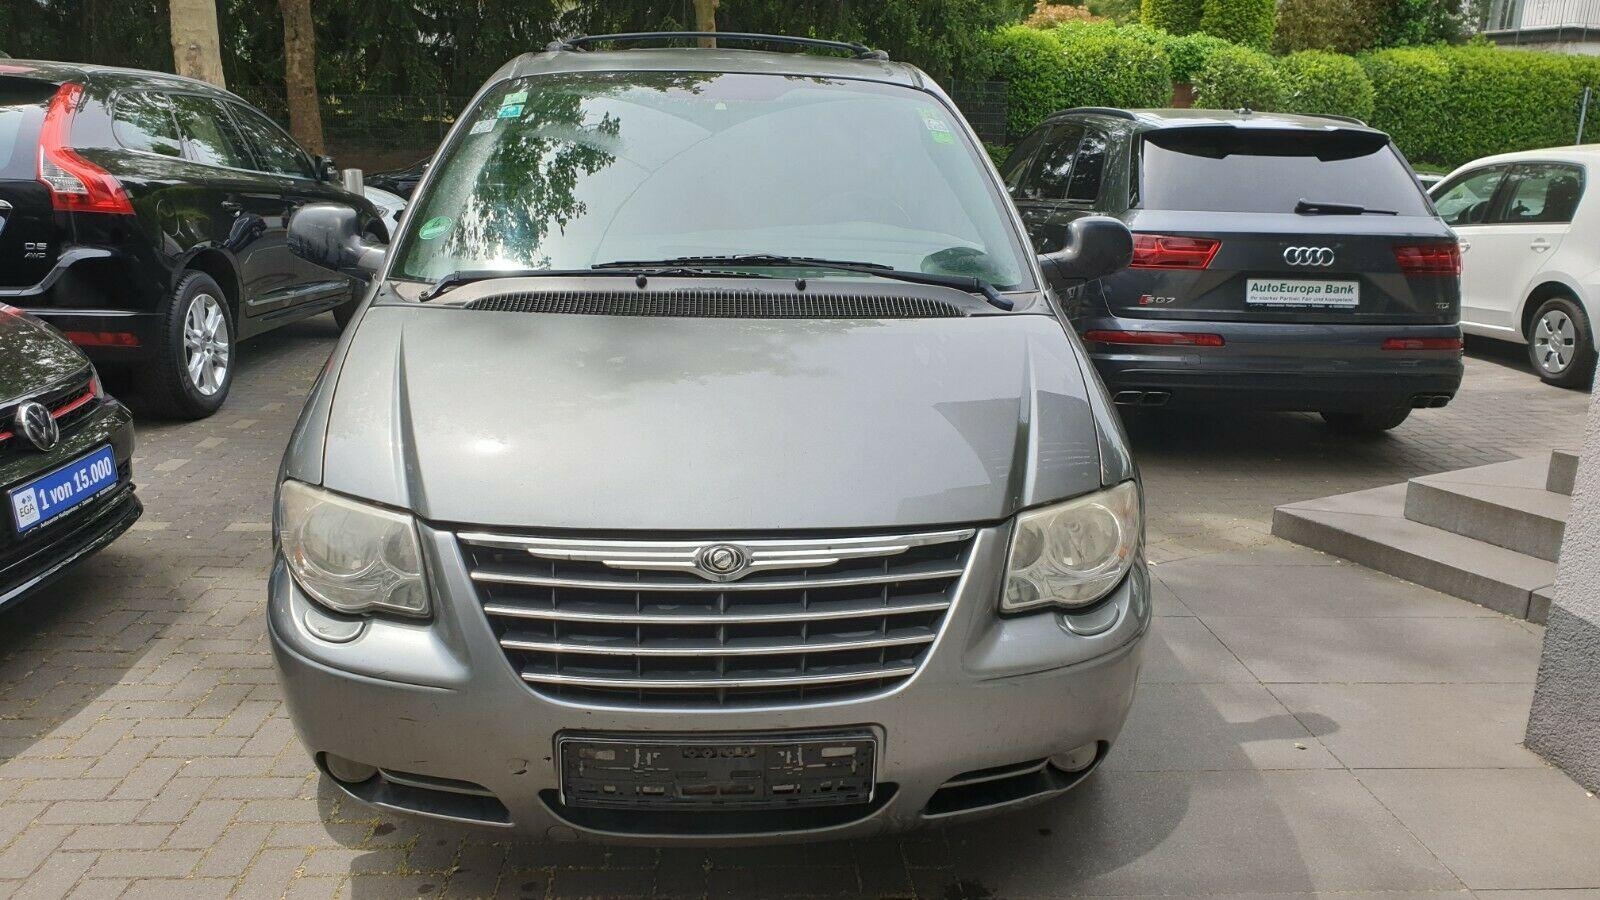 CHRYSLER Grand Voyager 2.8 CRD Limited Stow'n Go Tempo